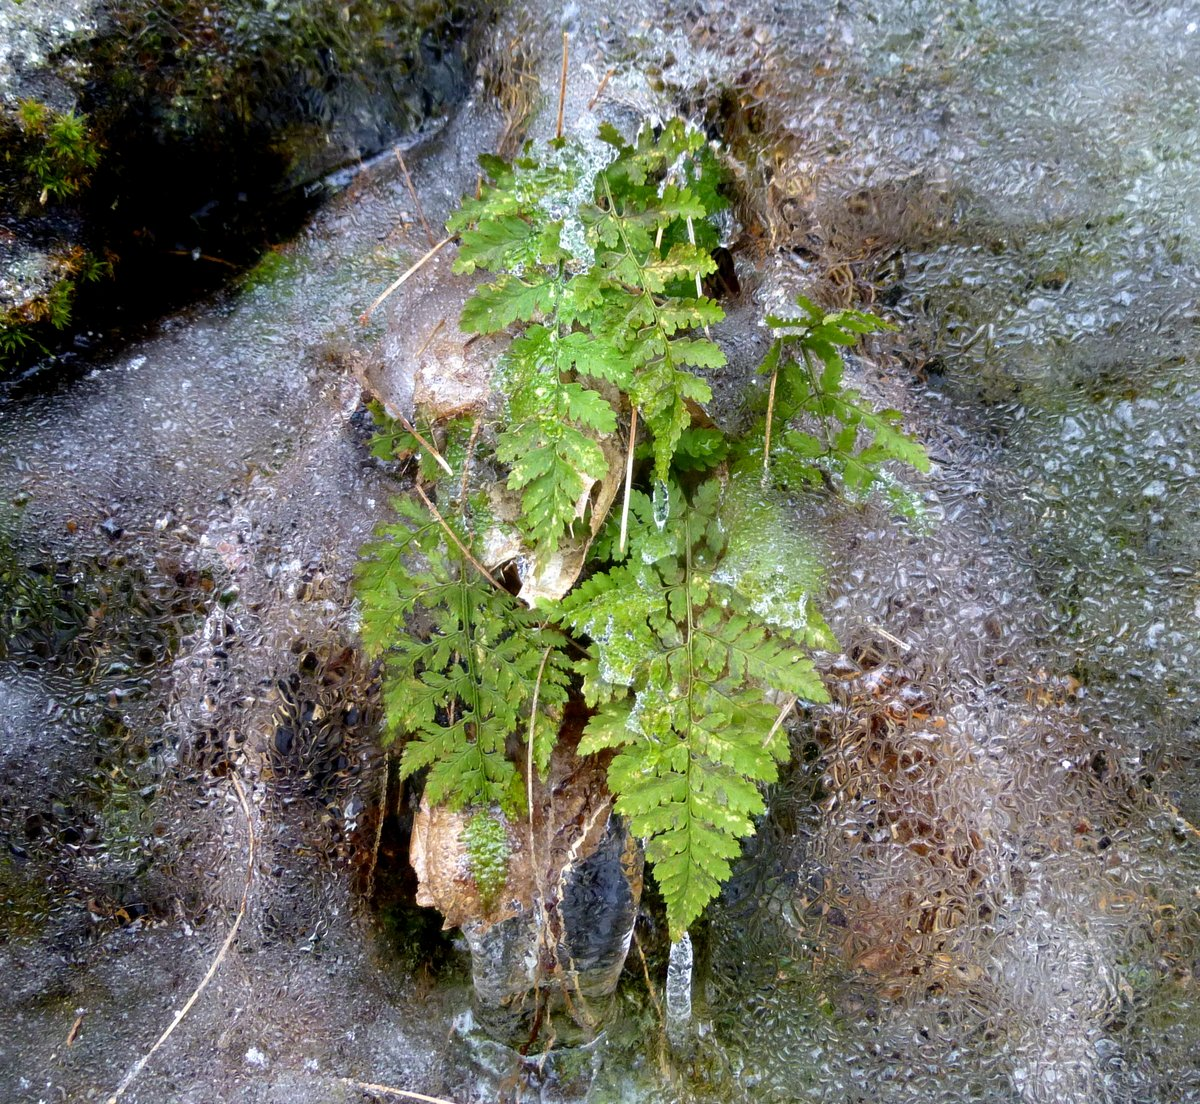 13. Fern in Ice